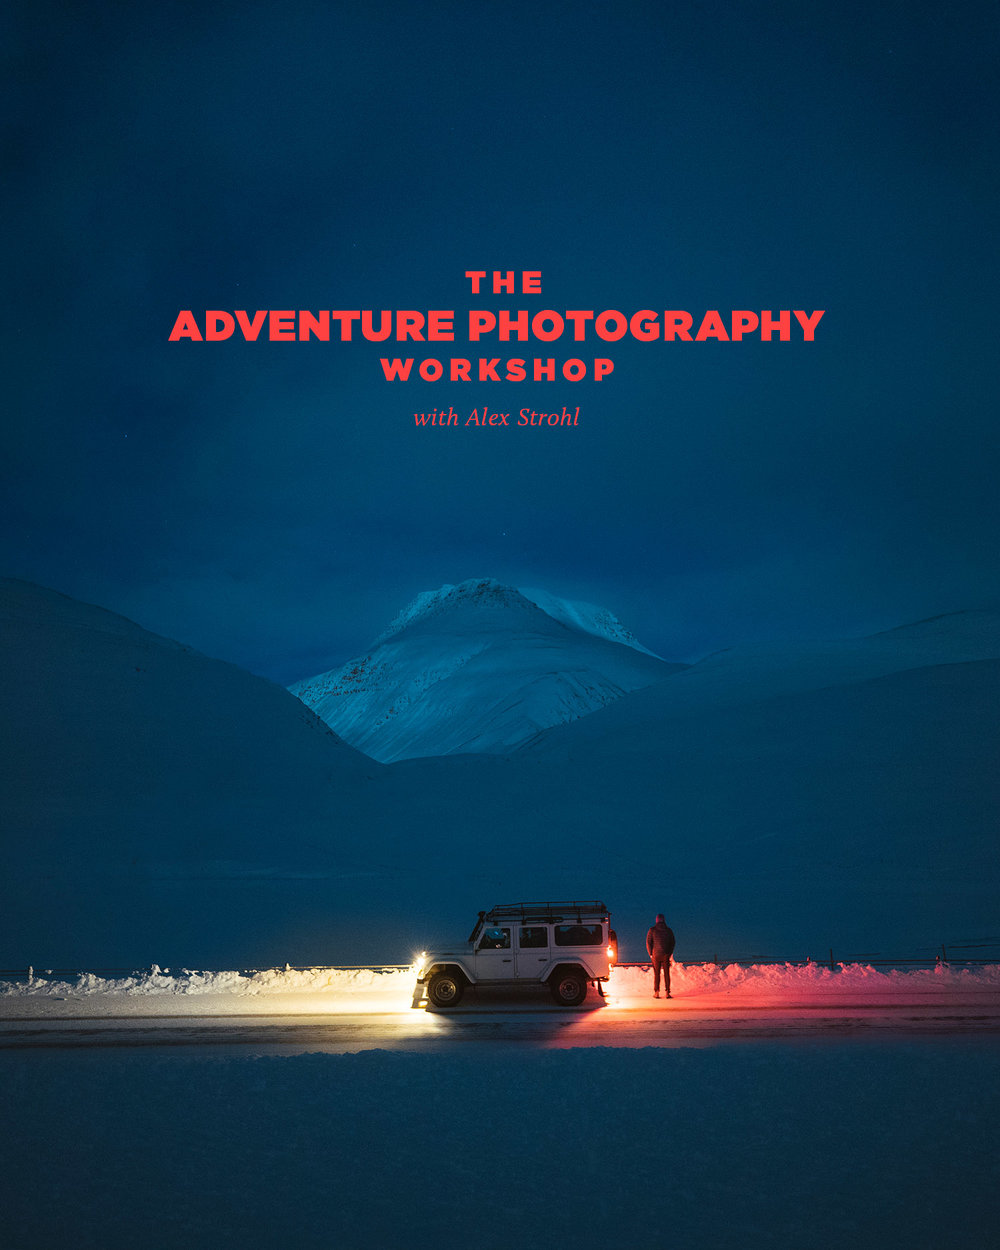 - The Adventure Photography WorkshopReleased: 20185 Hours / 48 Episodes / 5 Presets